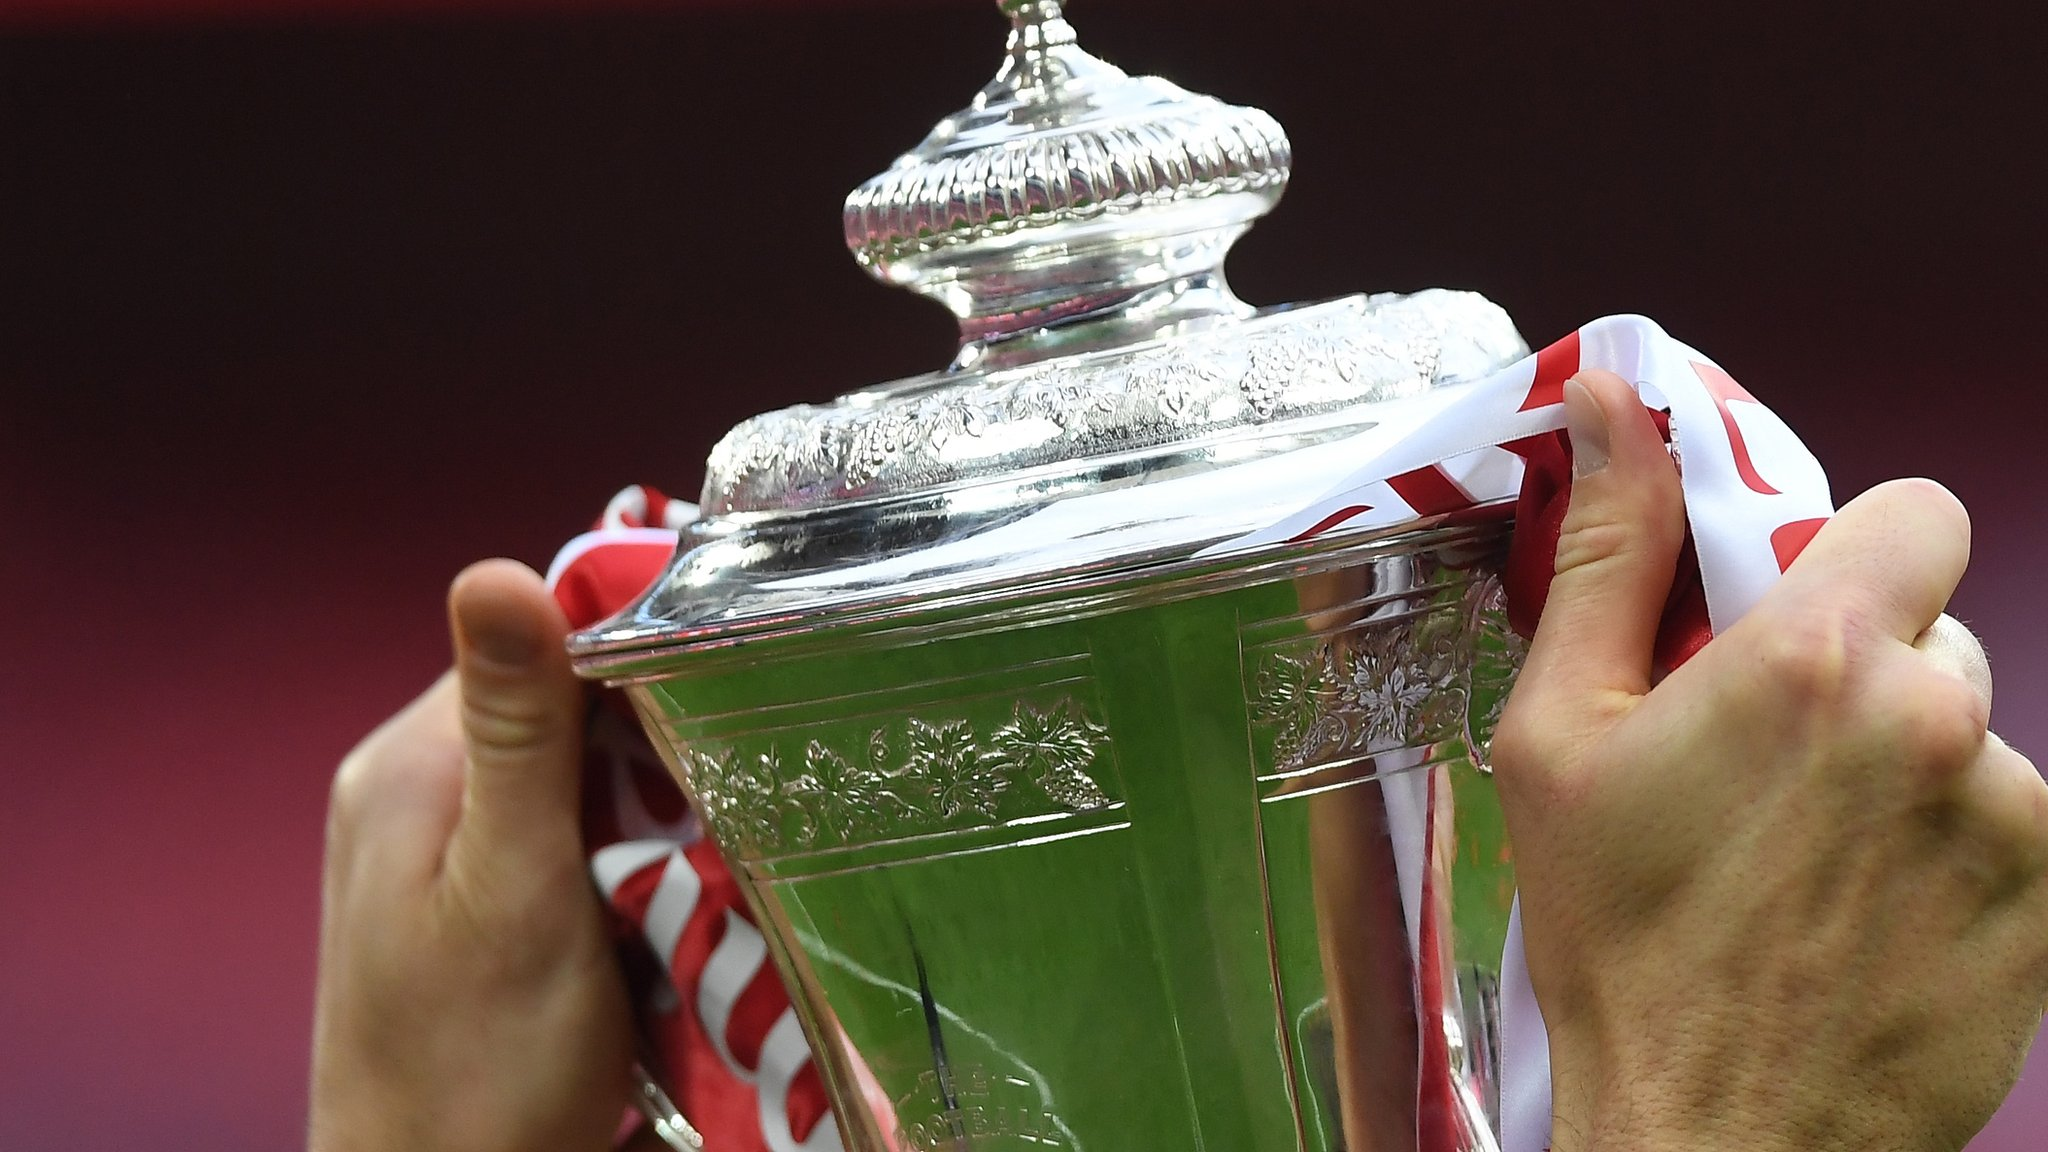 FA Cup quarter-final draw: Man Utd face Wolves in last eight